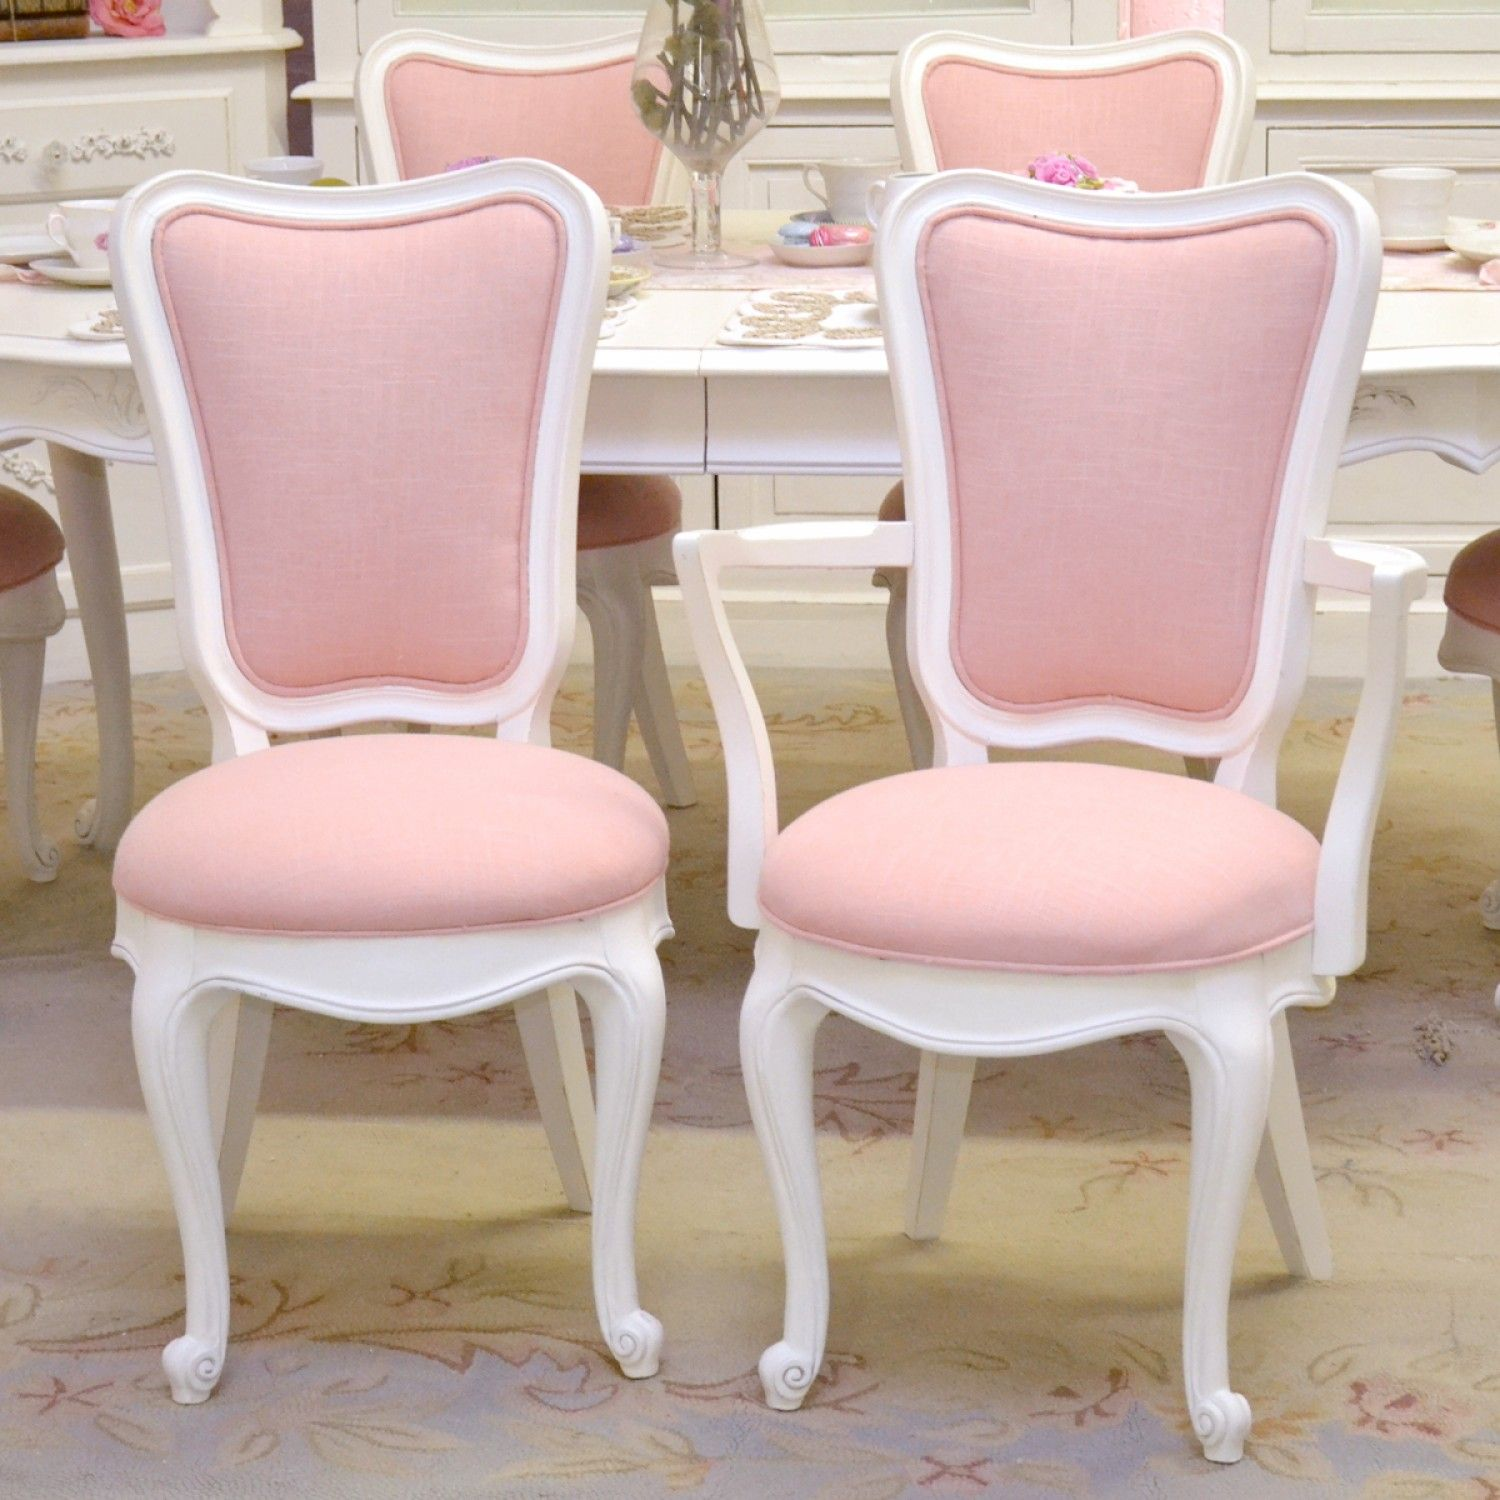 elegant tall back dining chairs in pink linen set of 6 thebellacottage shabbychic. Black Bedroom Furniture Sets. Home Design Ideas